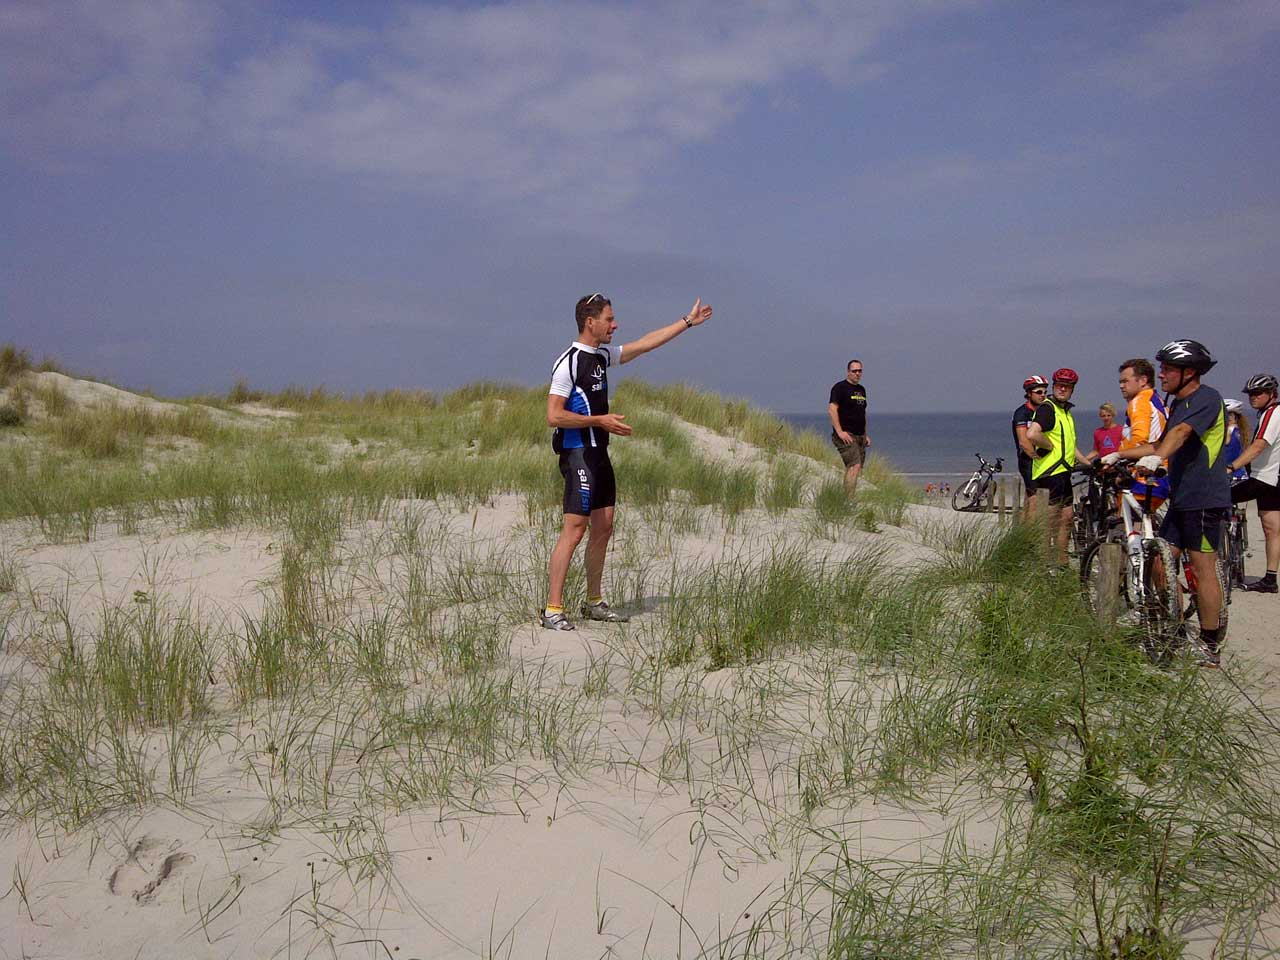 Mountainbike training gegeven door ervaren trainers.